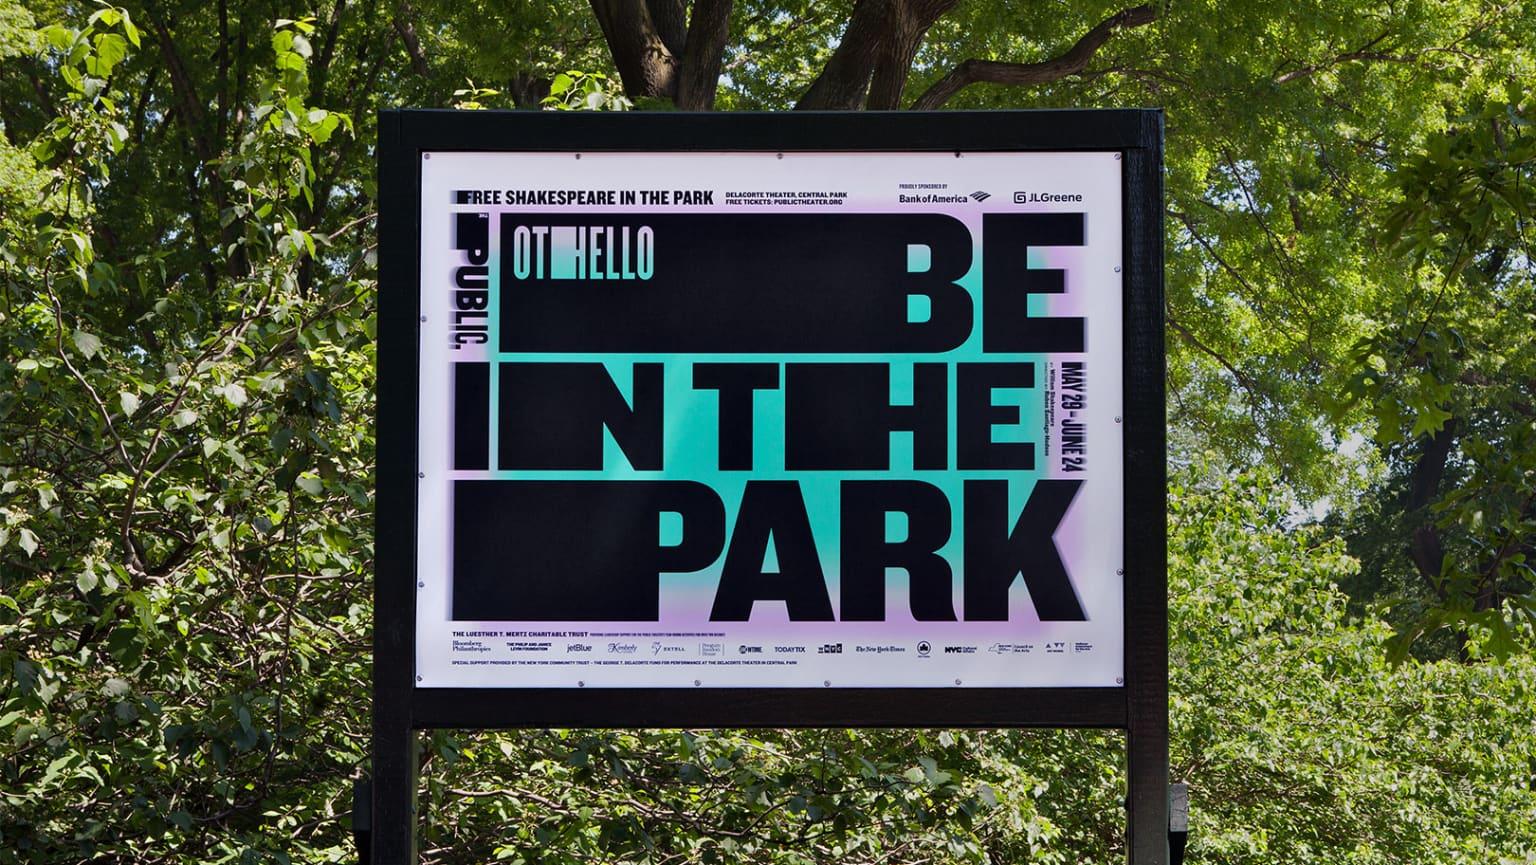 Shakespeare in the Park 2018